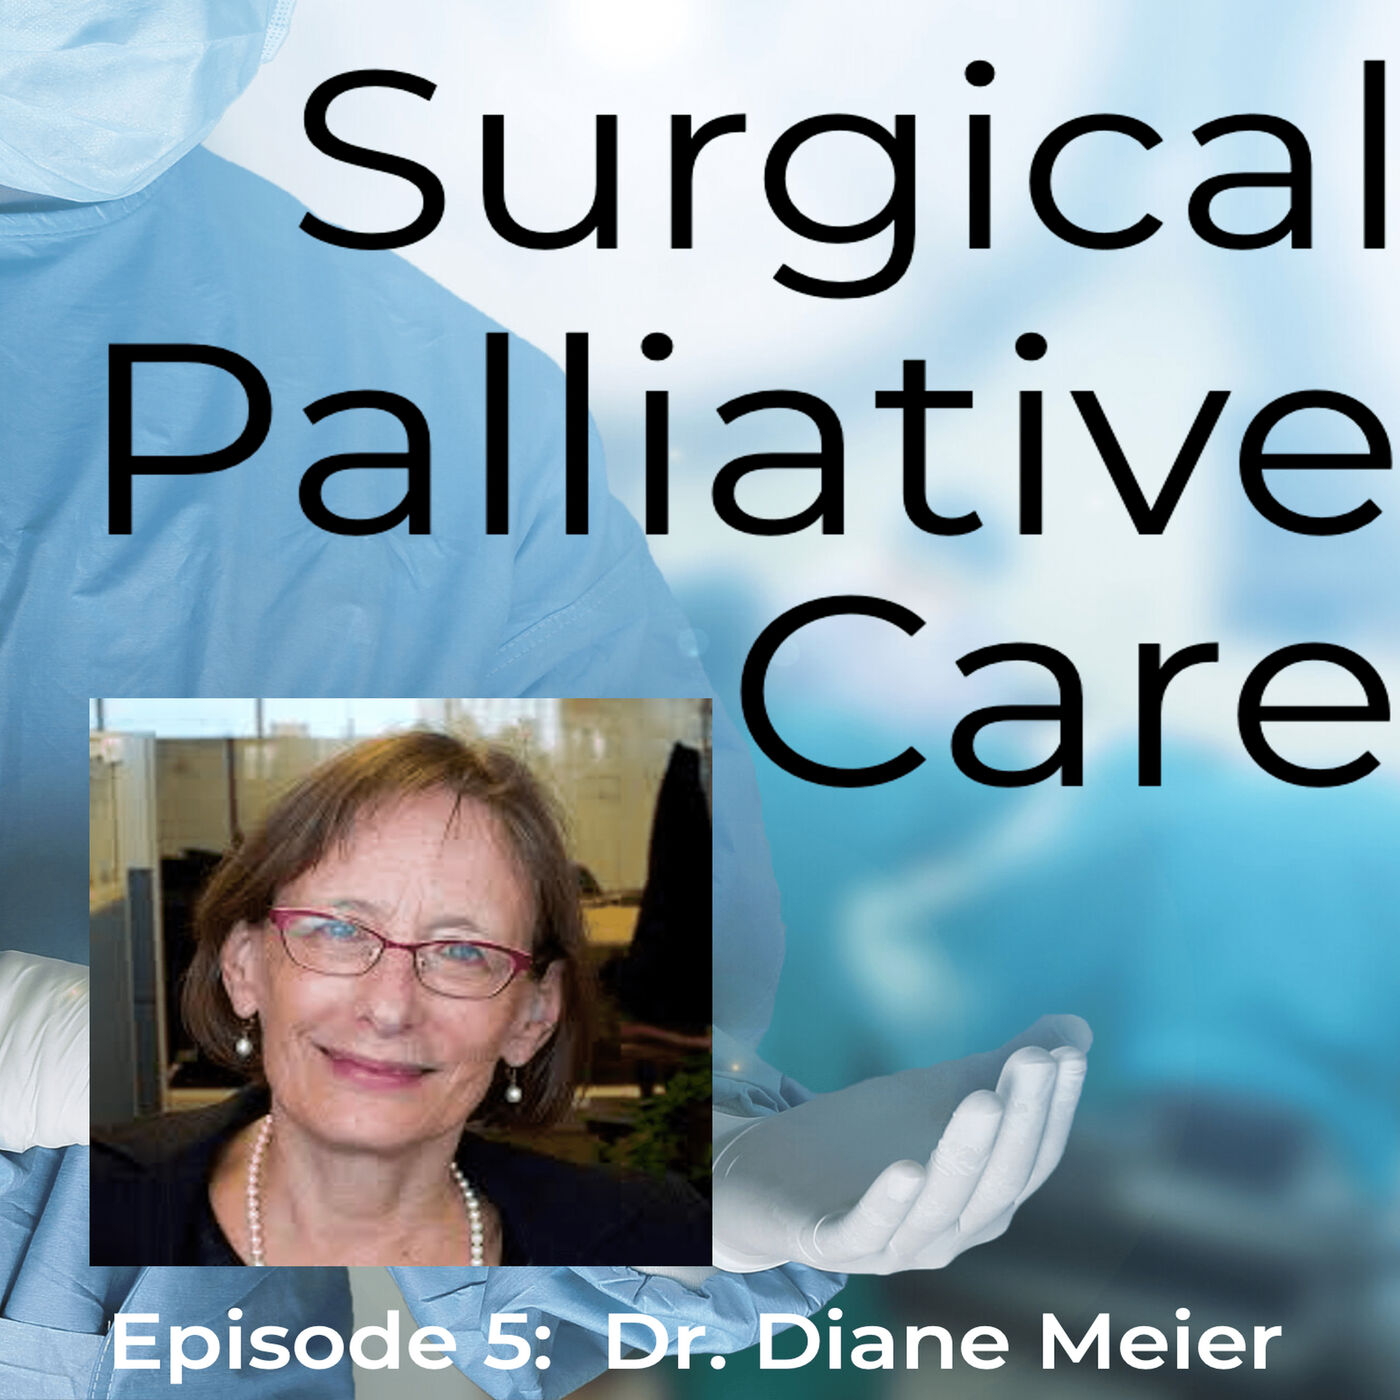 Dr. Diane Meier: Founder of the Center to Advance Palliative Care (CAPC)